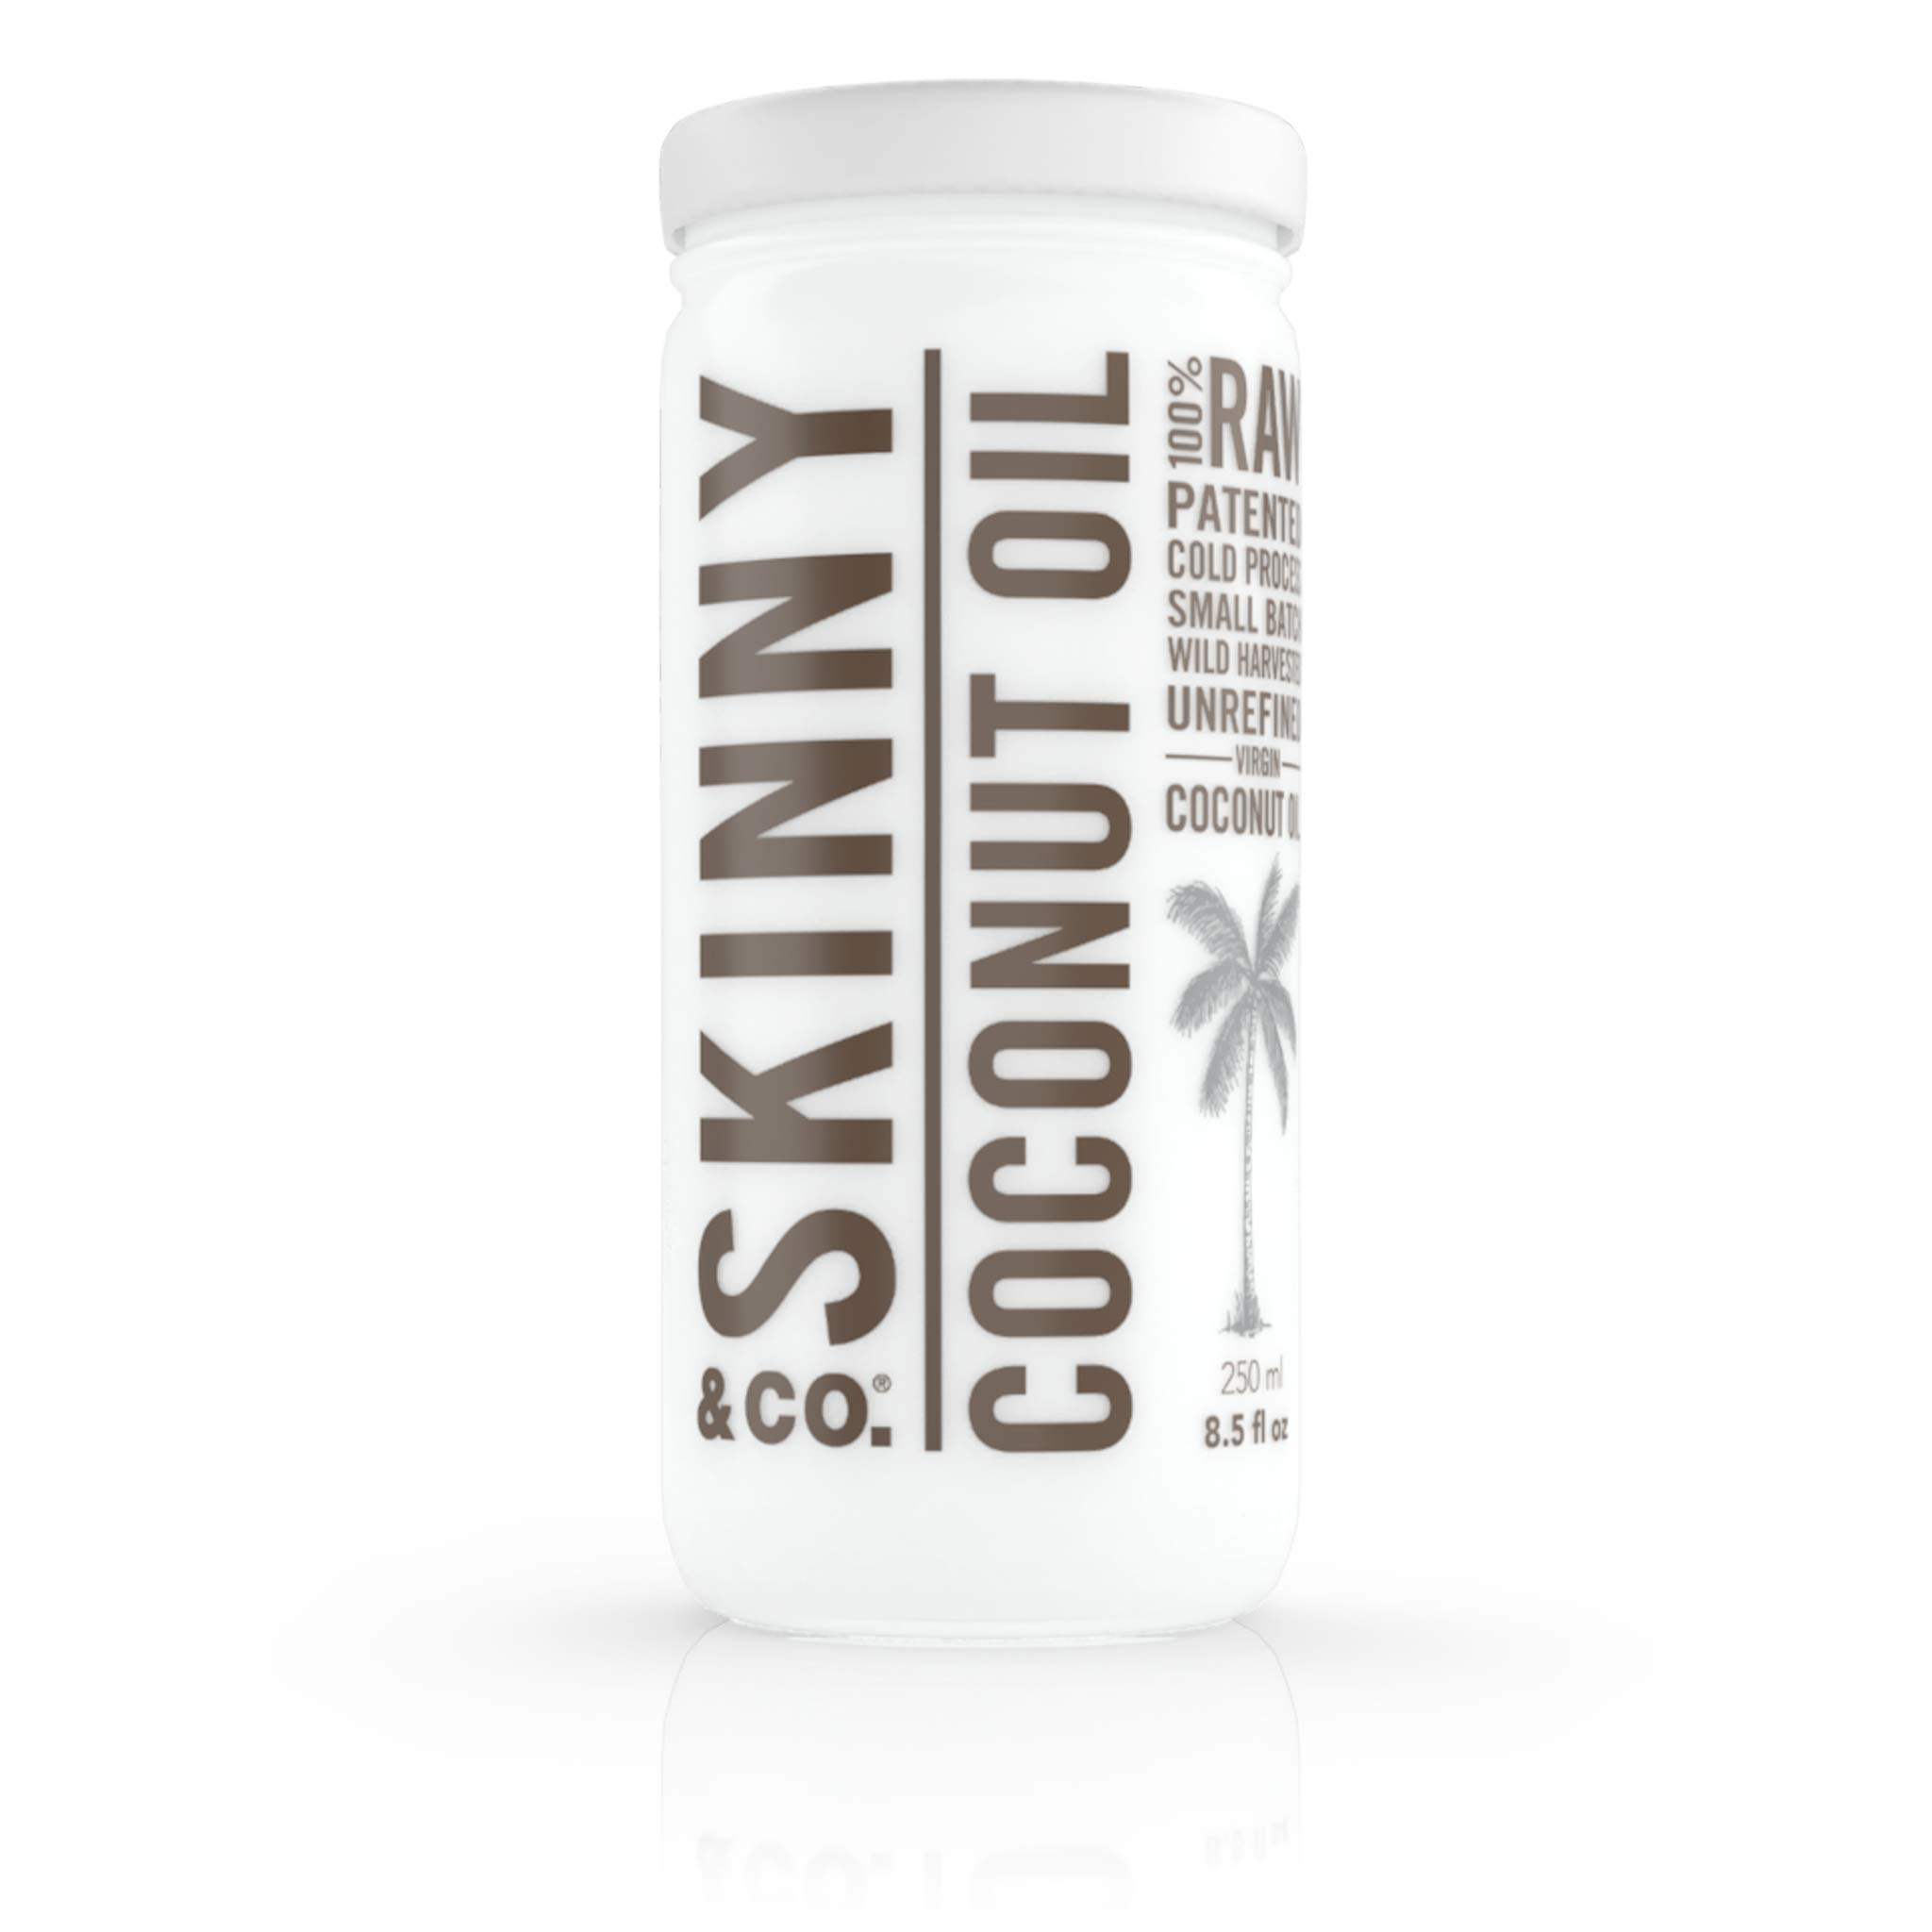 SKINNY & CO. Coconut Oil -100% Raw & Pure Virgin Coconut Oil- Multi-Use, Hair and Skin Supplement, Cooking Oil Substitute, Paleo, Keto, Vegan, Cruelty-Free, Non GMO, Soy Free and No Trans Fat, 8.5 oz.